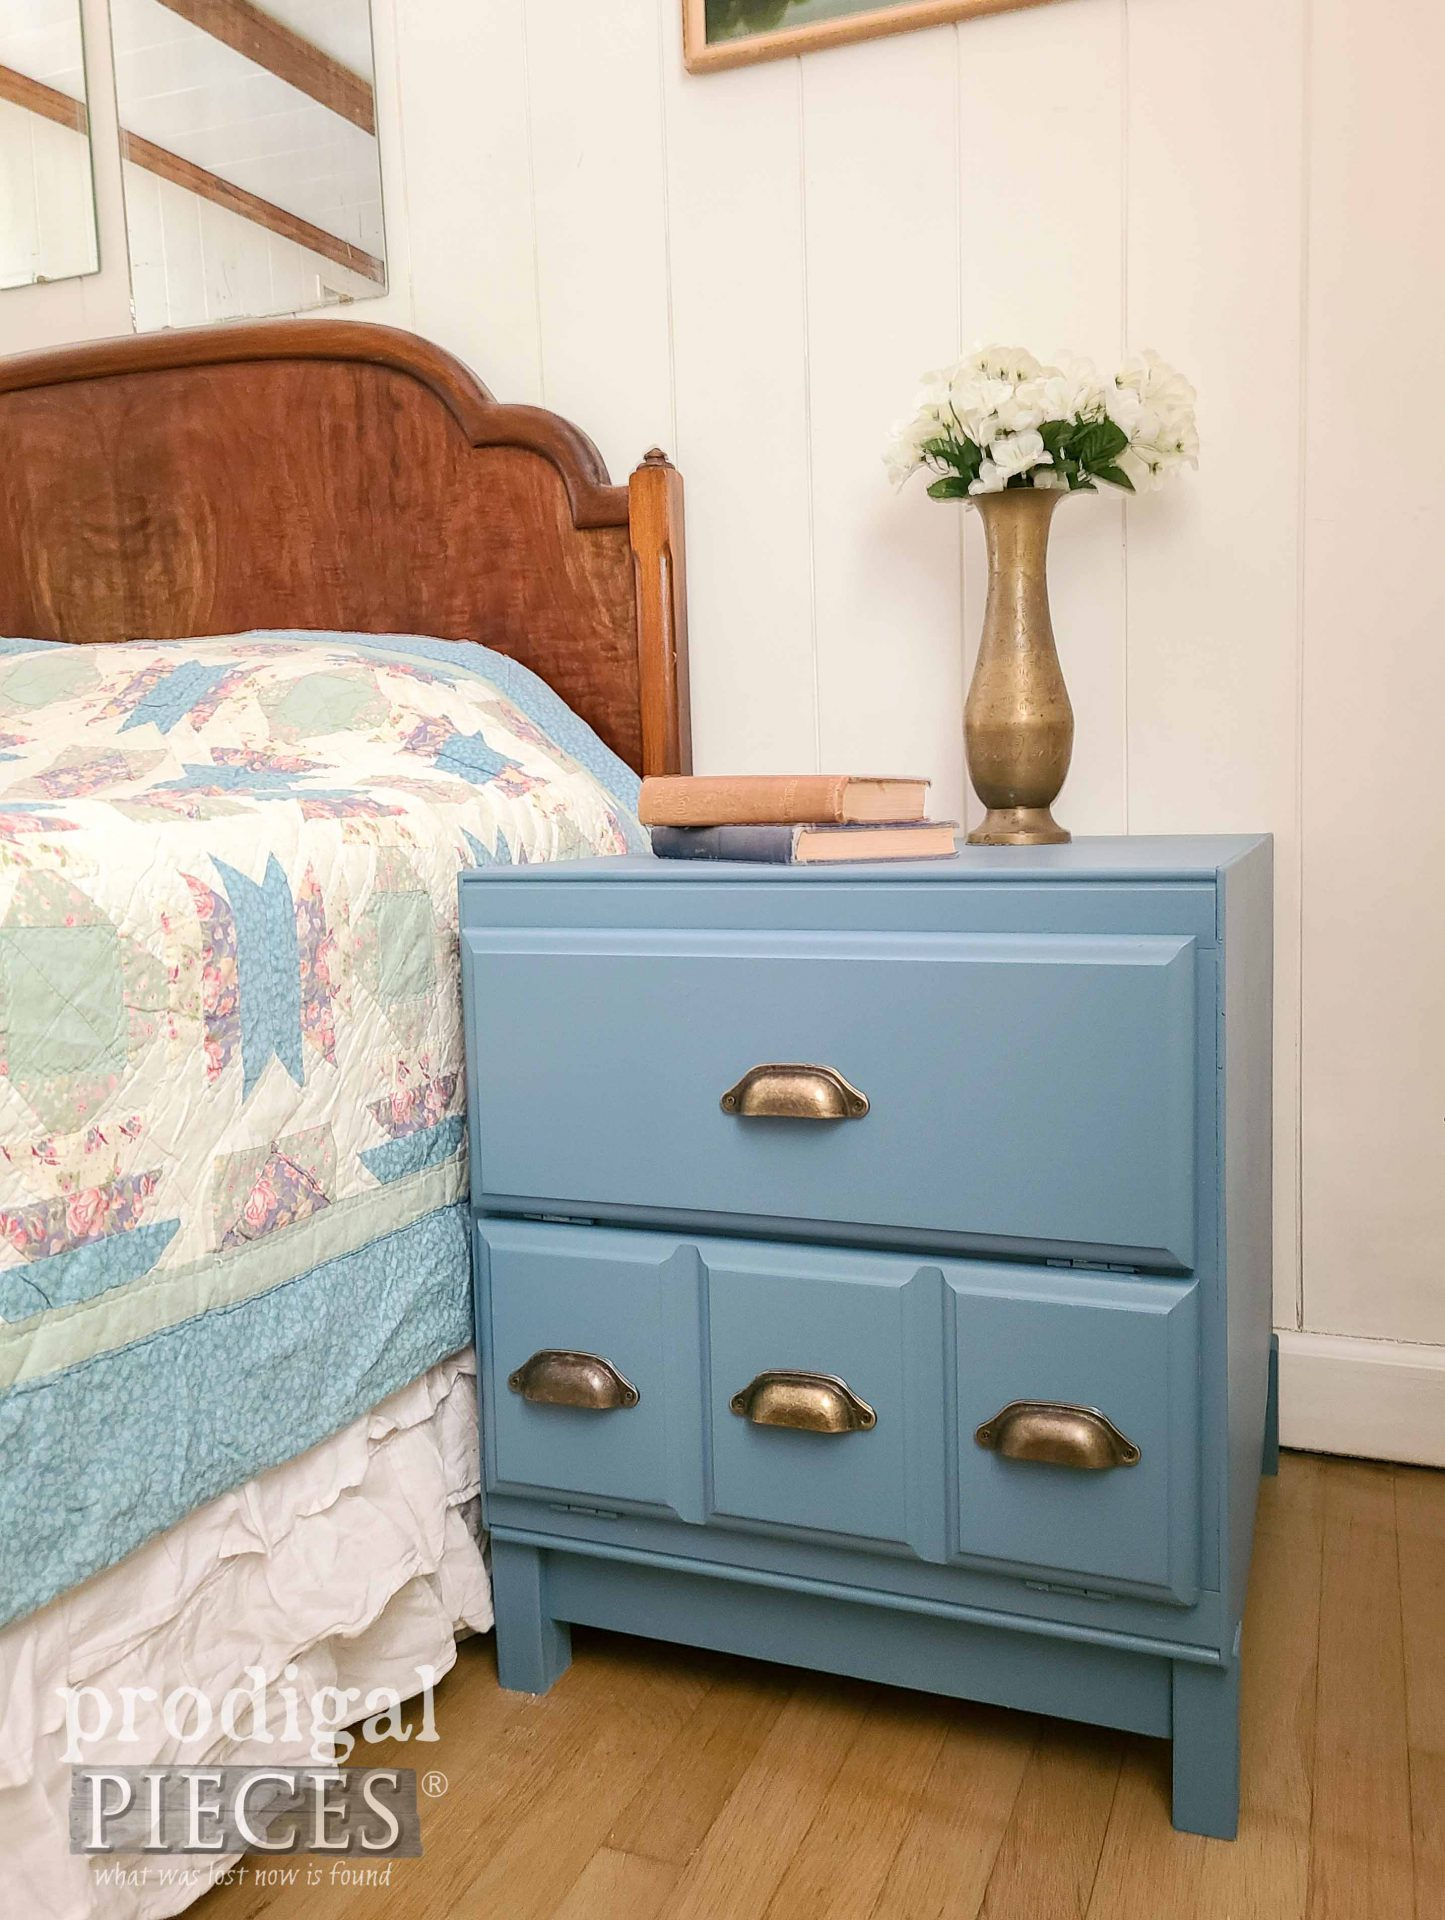 Cabinet Side Table Side View in Blue by Larissa of Prodigal Pieces   prodigalpieces.com #prodigalpieces #furniture #blue #modernfarmhouse